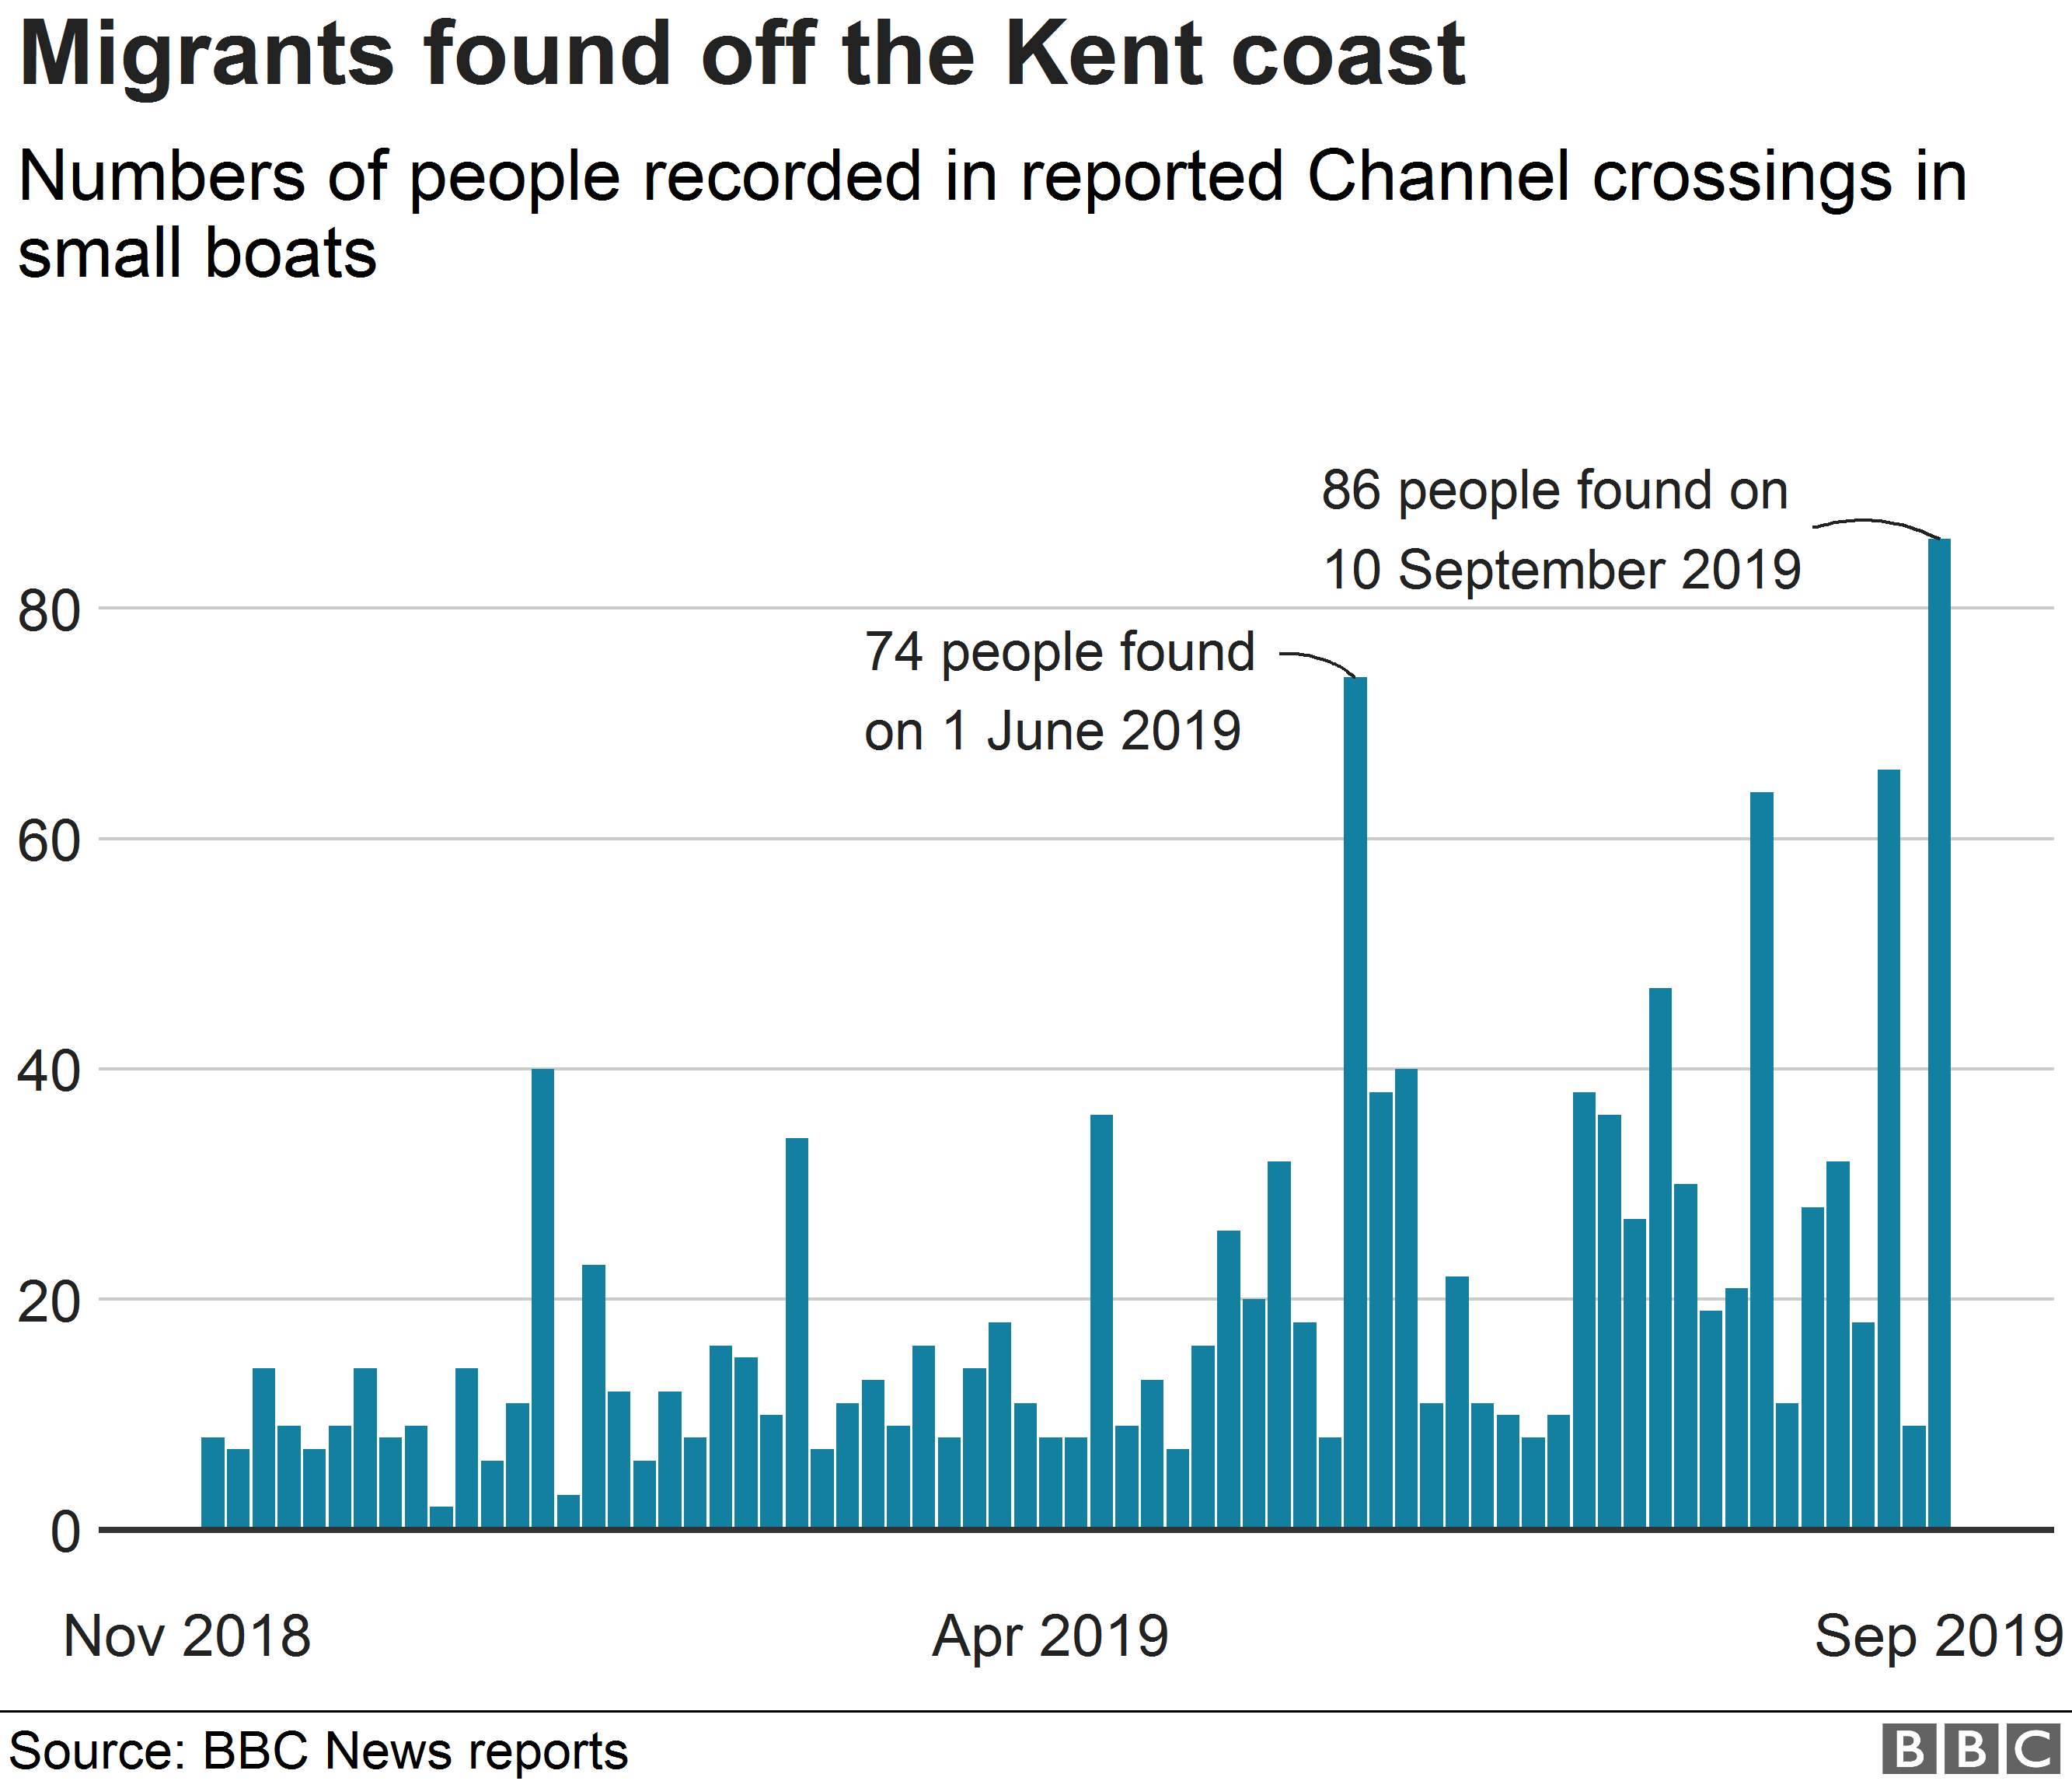 Chart showing numbers of migrants found after crossing the Channel